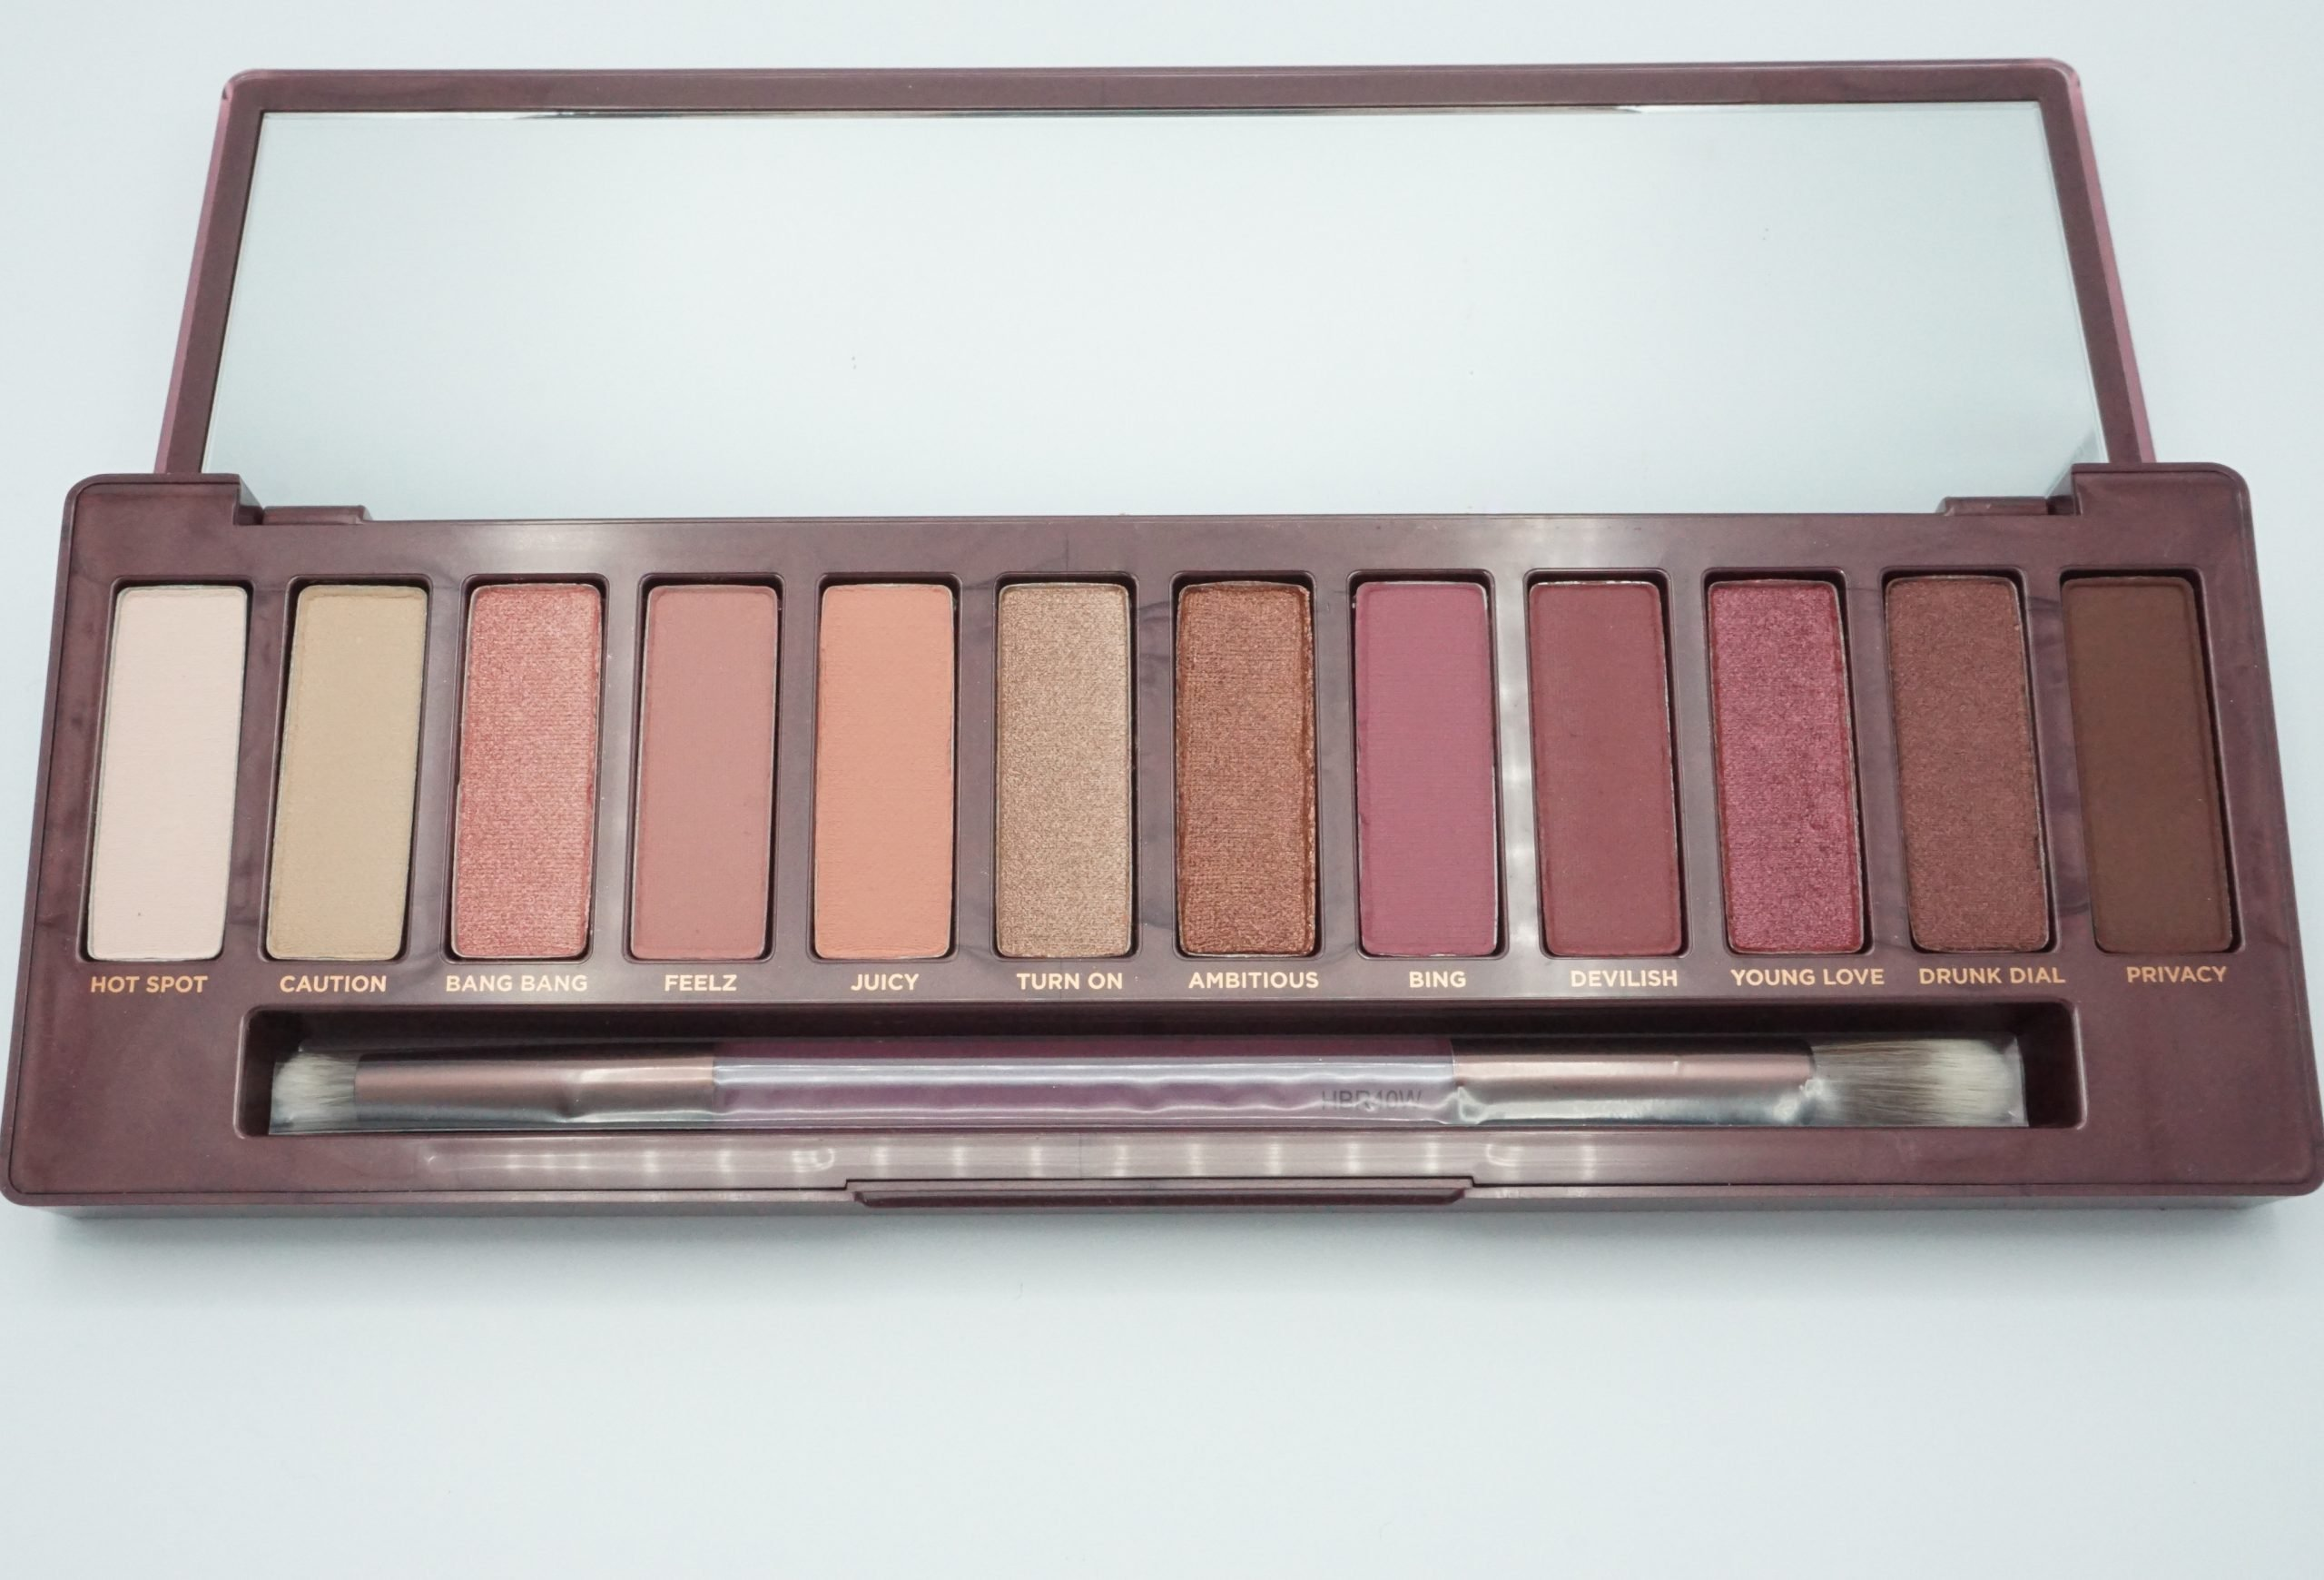 Urban Decay Naked Cherry Palette Review & Swatches